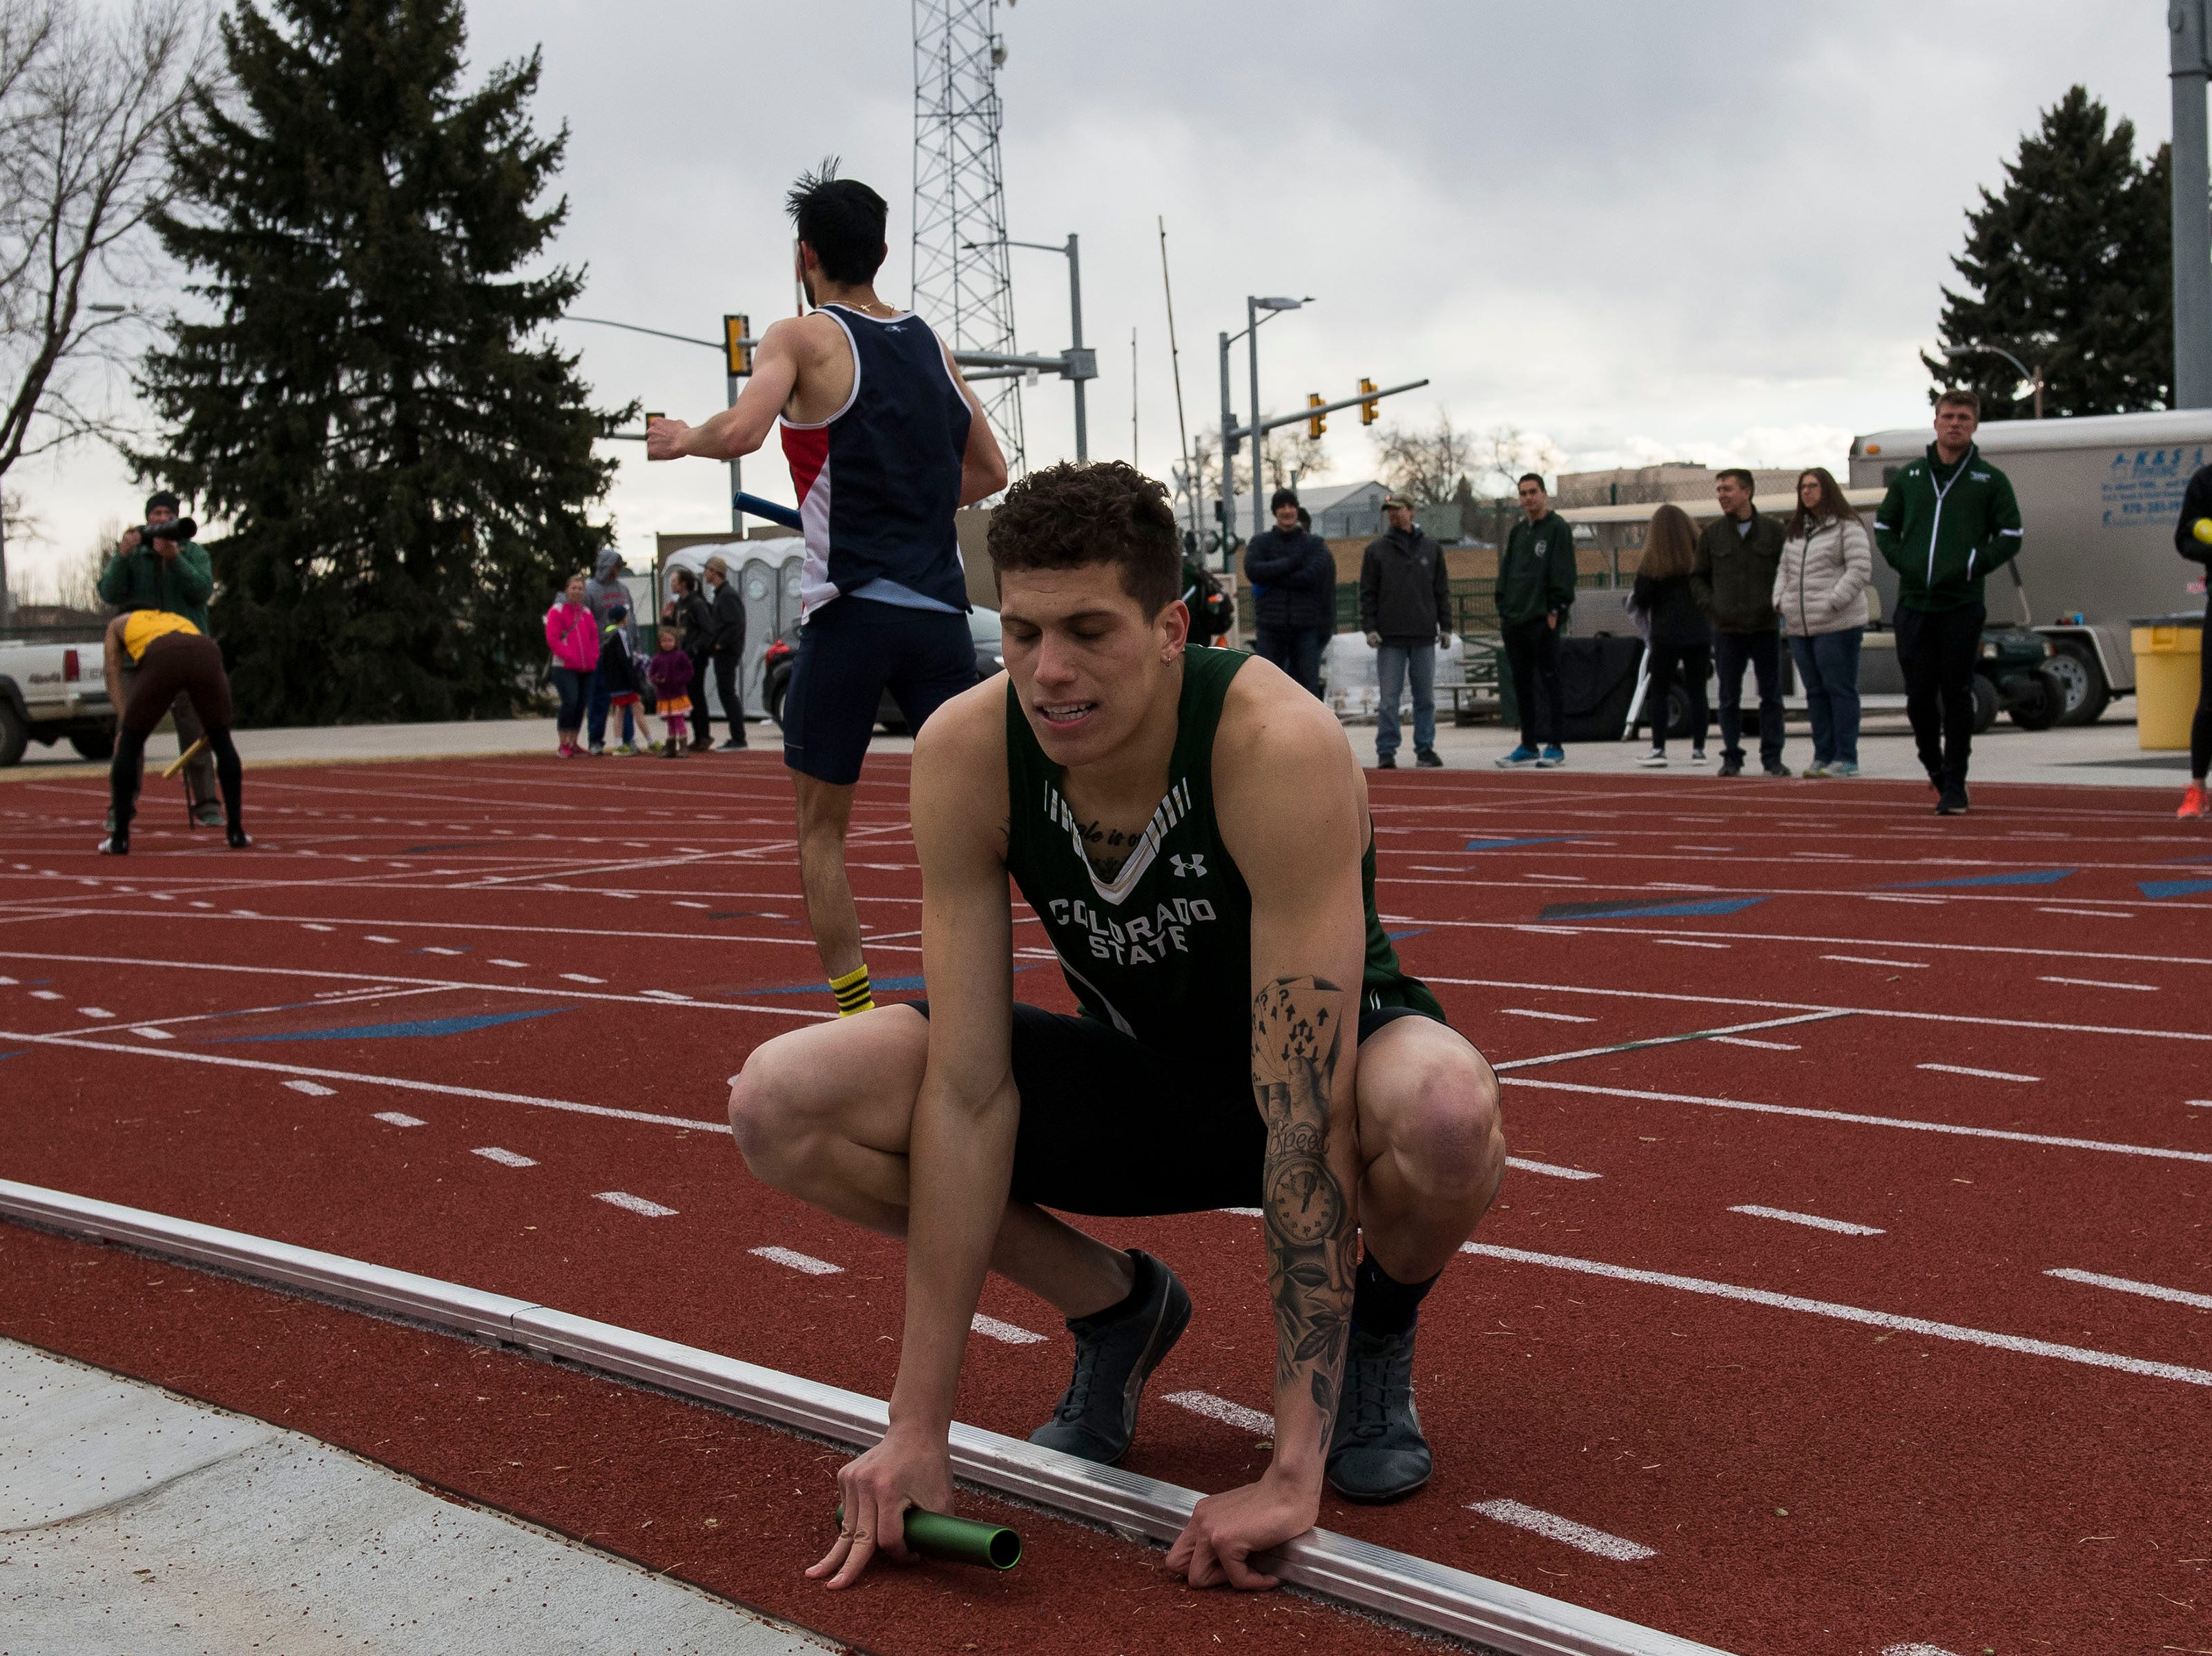 Colorado State University sophomore Caleb Hardy reacts after narrowly losing to University of Wyoming in the mens 4x400-meter relay on Saturday, March 23, 2019, at the Jack Christiansen Memorial Track in Fort Collins, Colo.